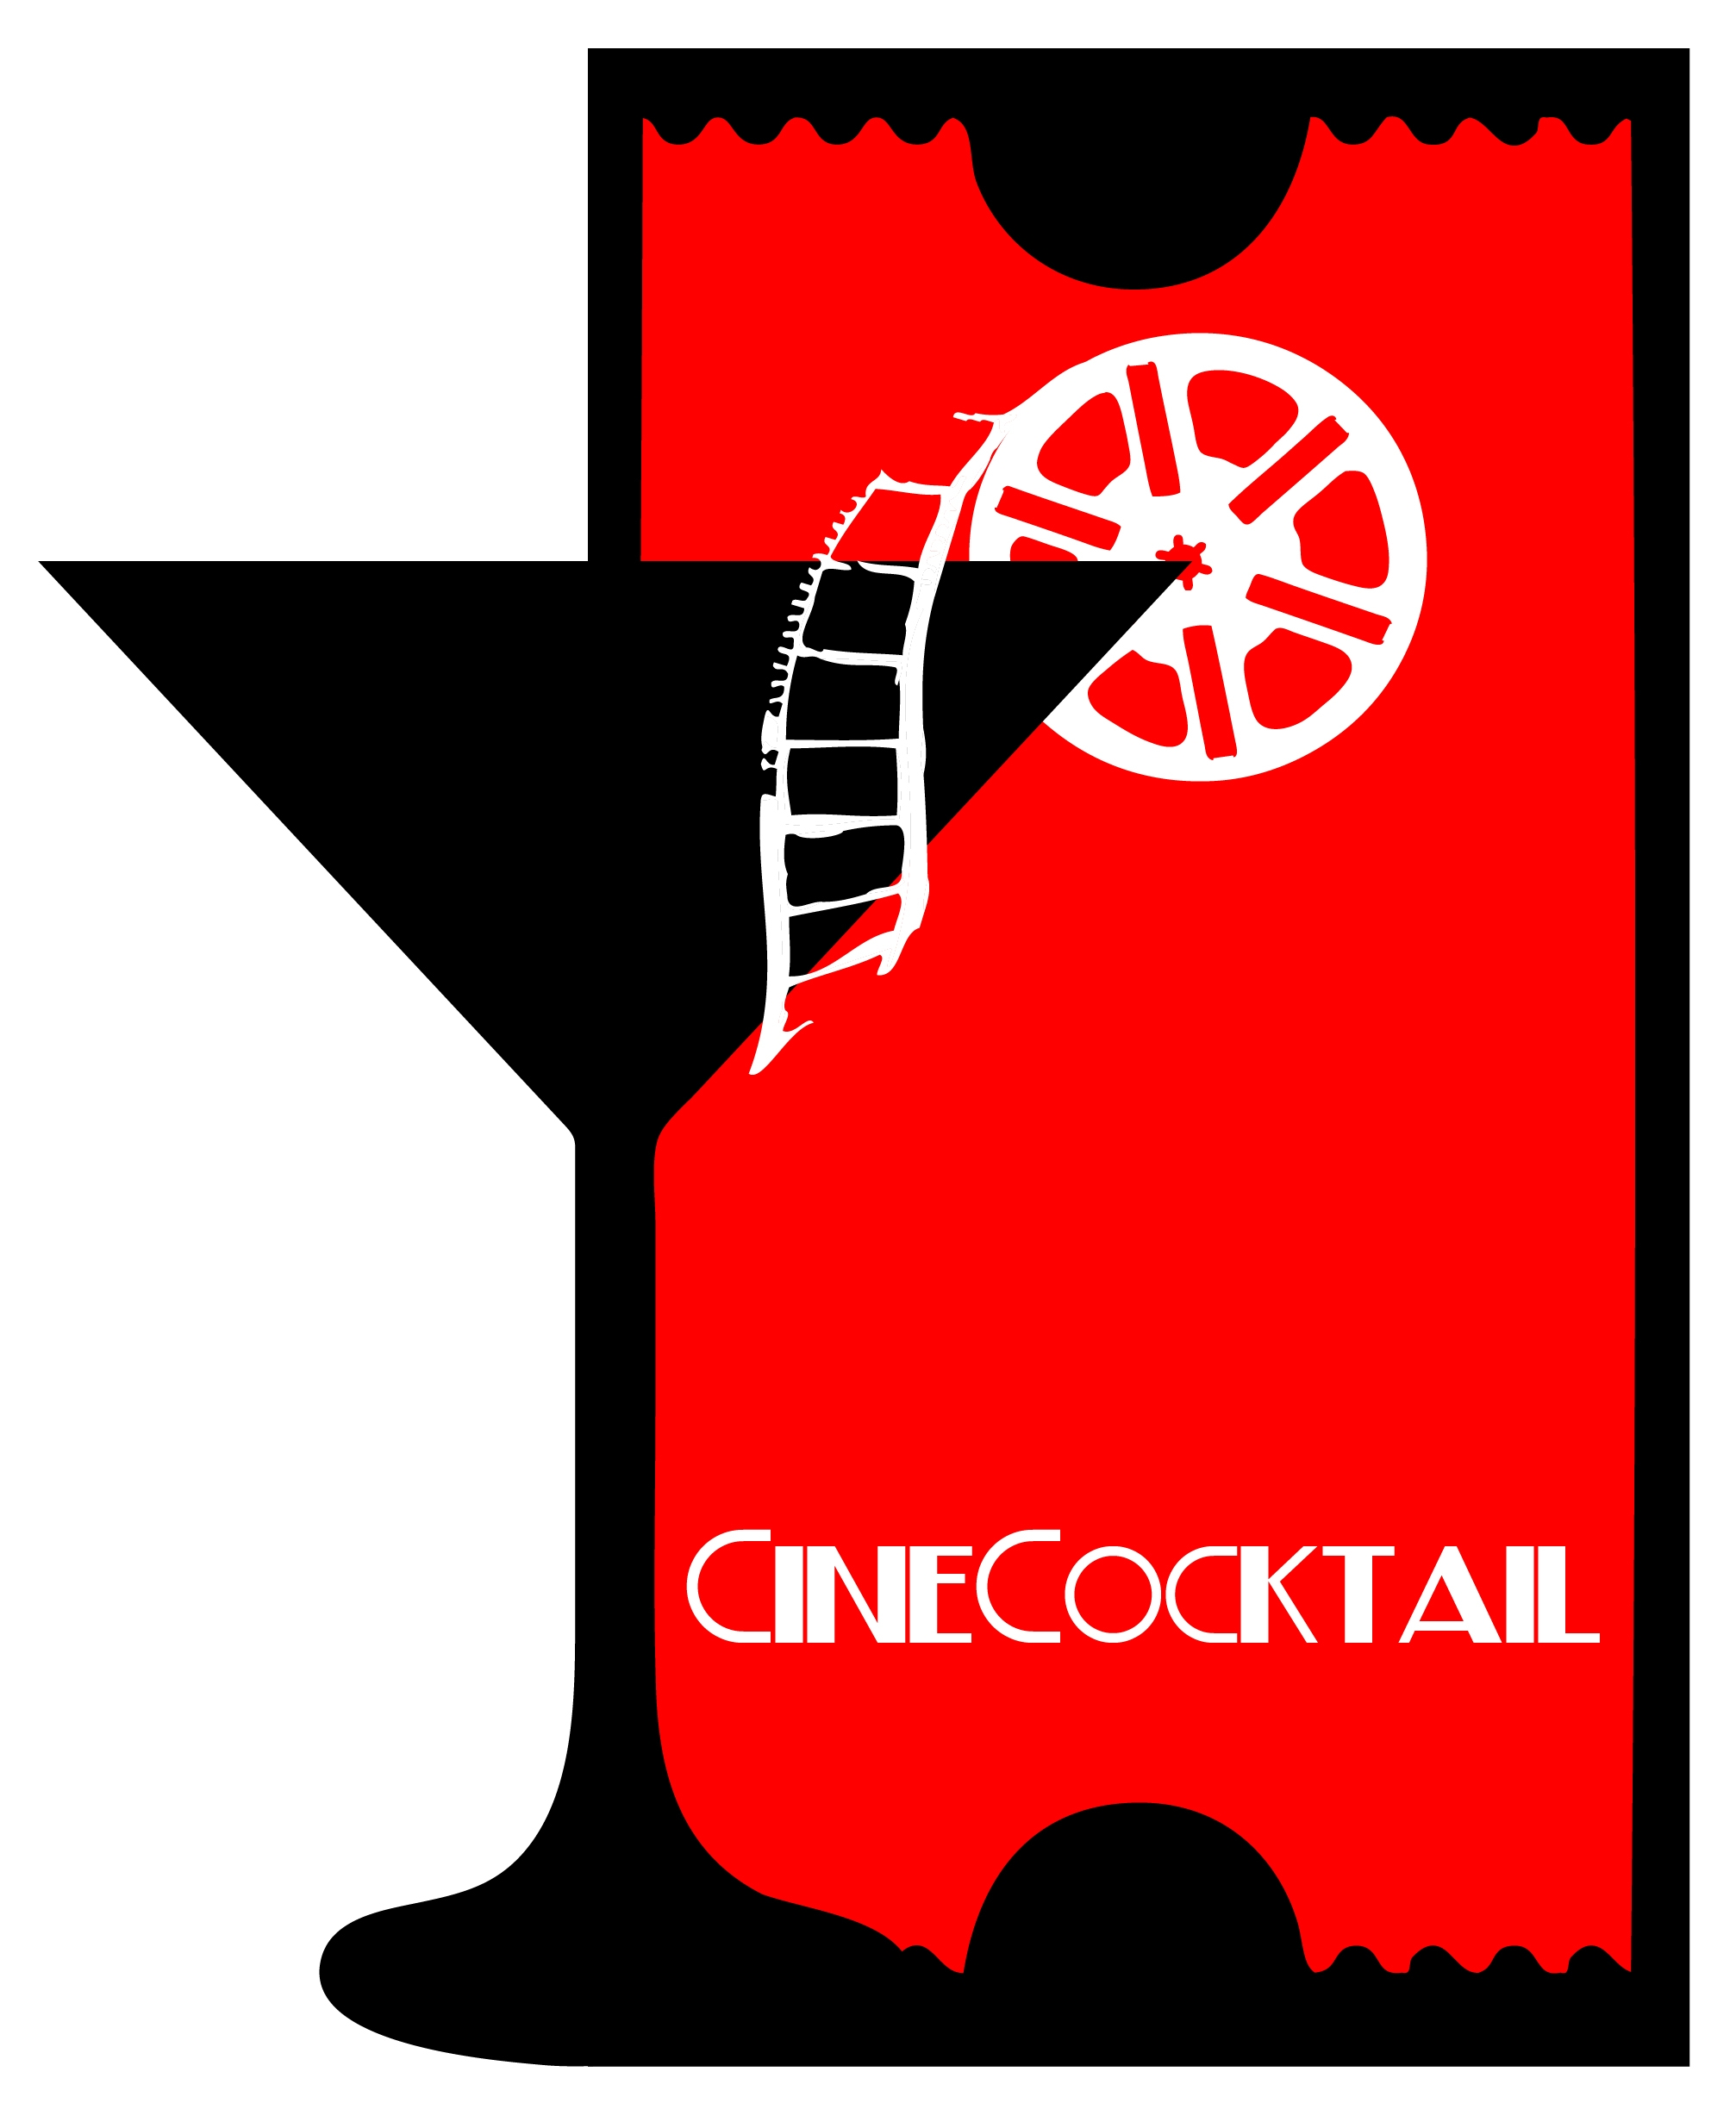 Cinema, cocktail e chiacchiere in libertà!